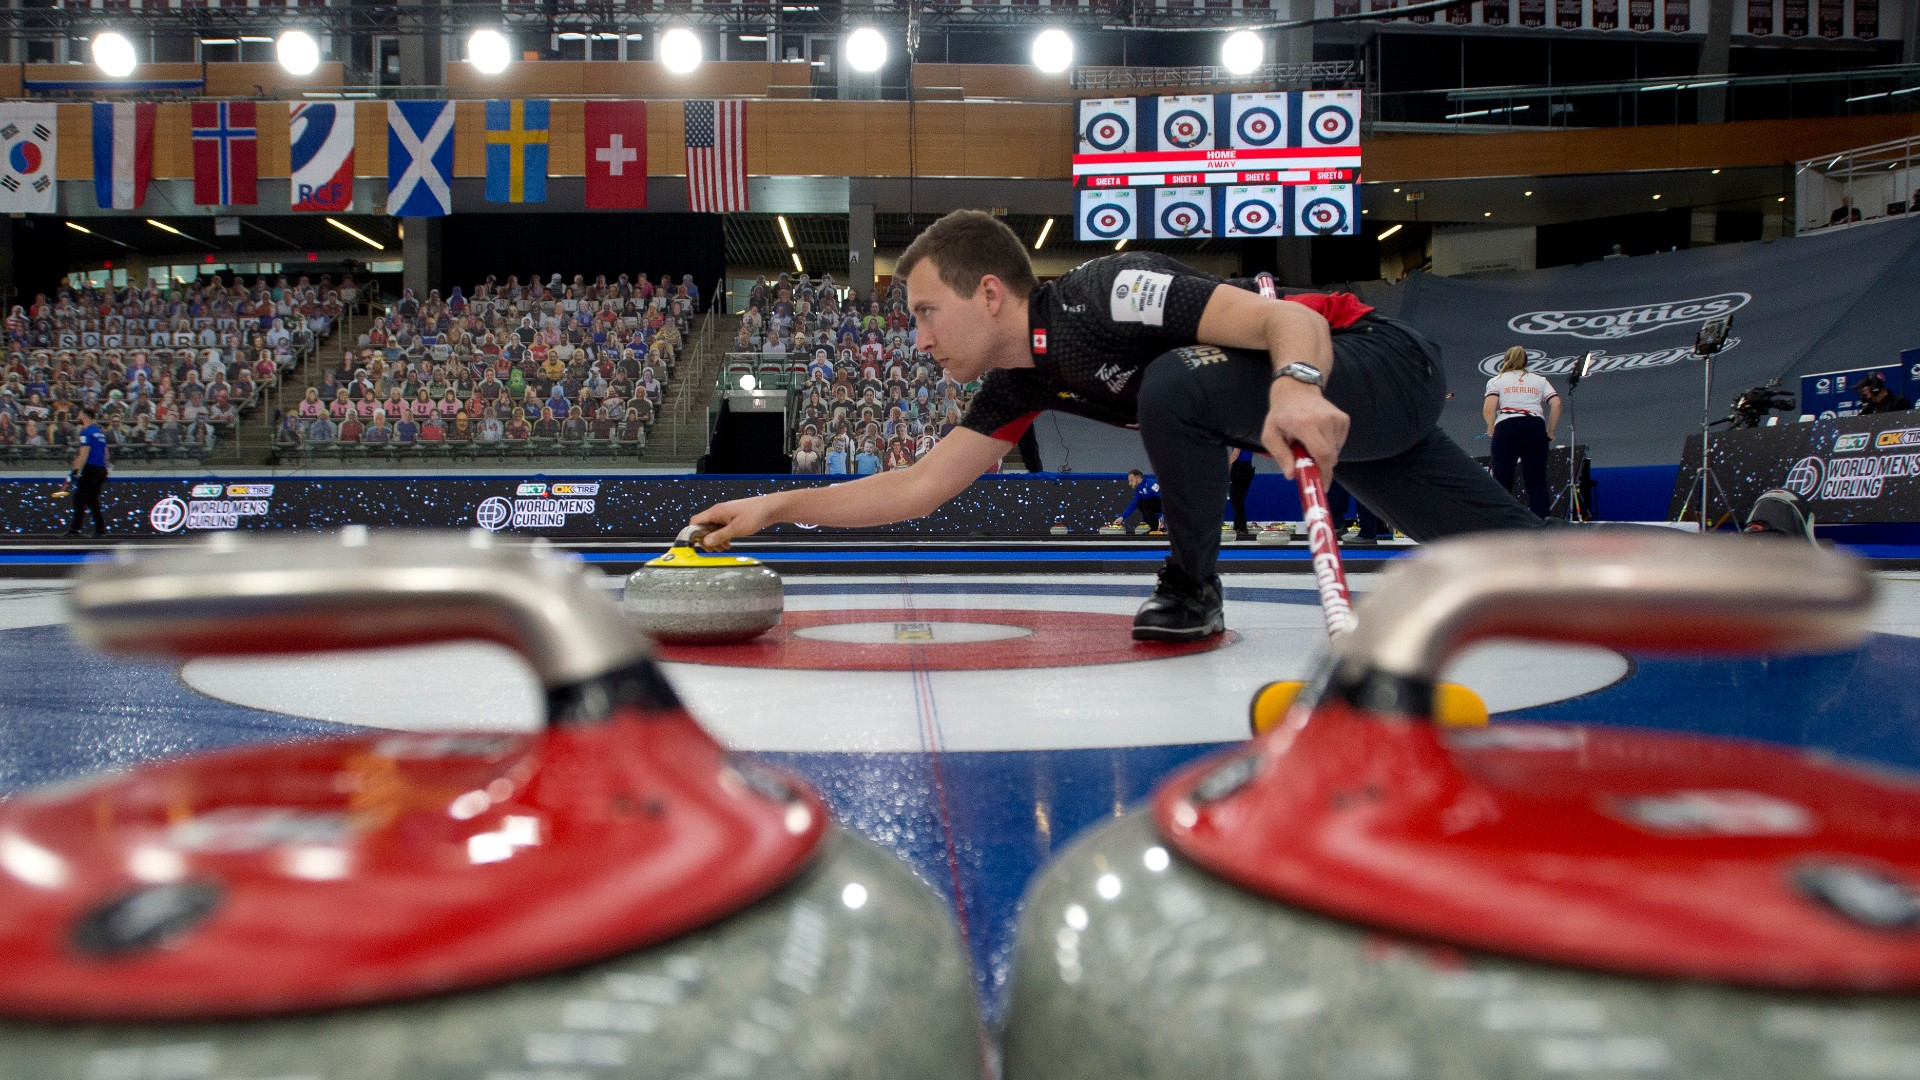 World Men's Curling Championship 2021: Results, standings, schedule and TV channel